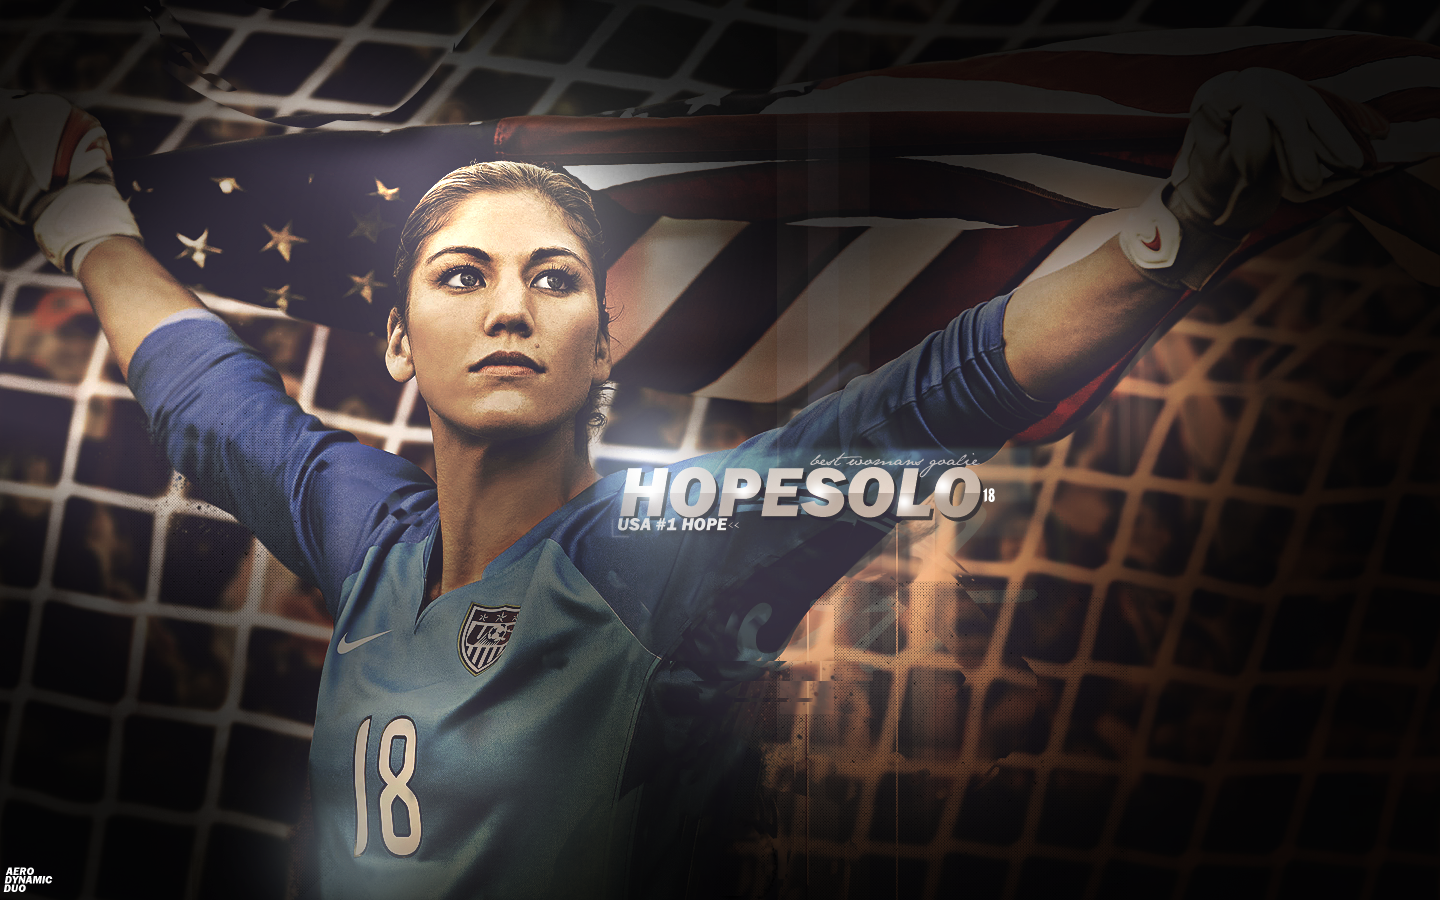 hope solo wallpaper hd with flag | fitness | hope solo, soccer und